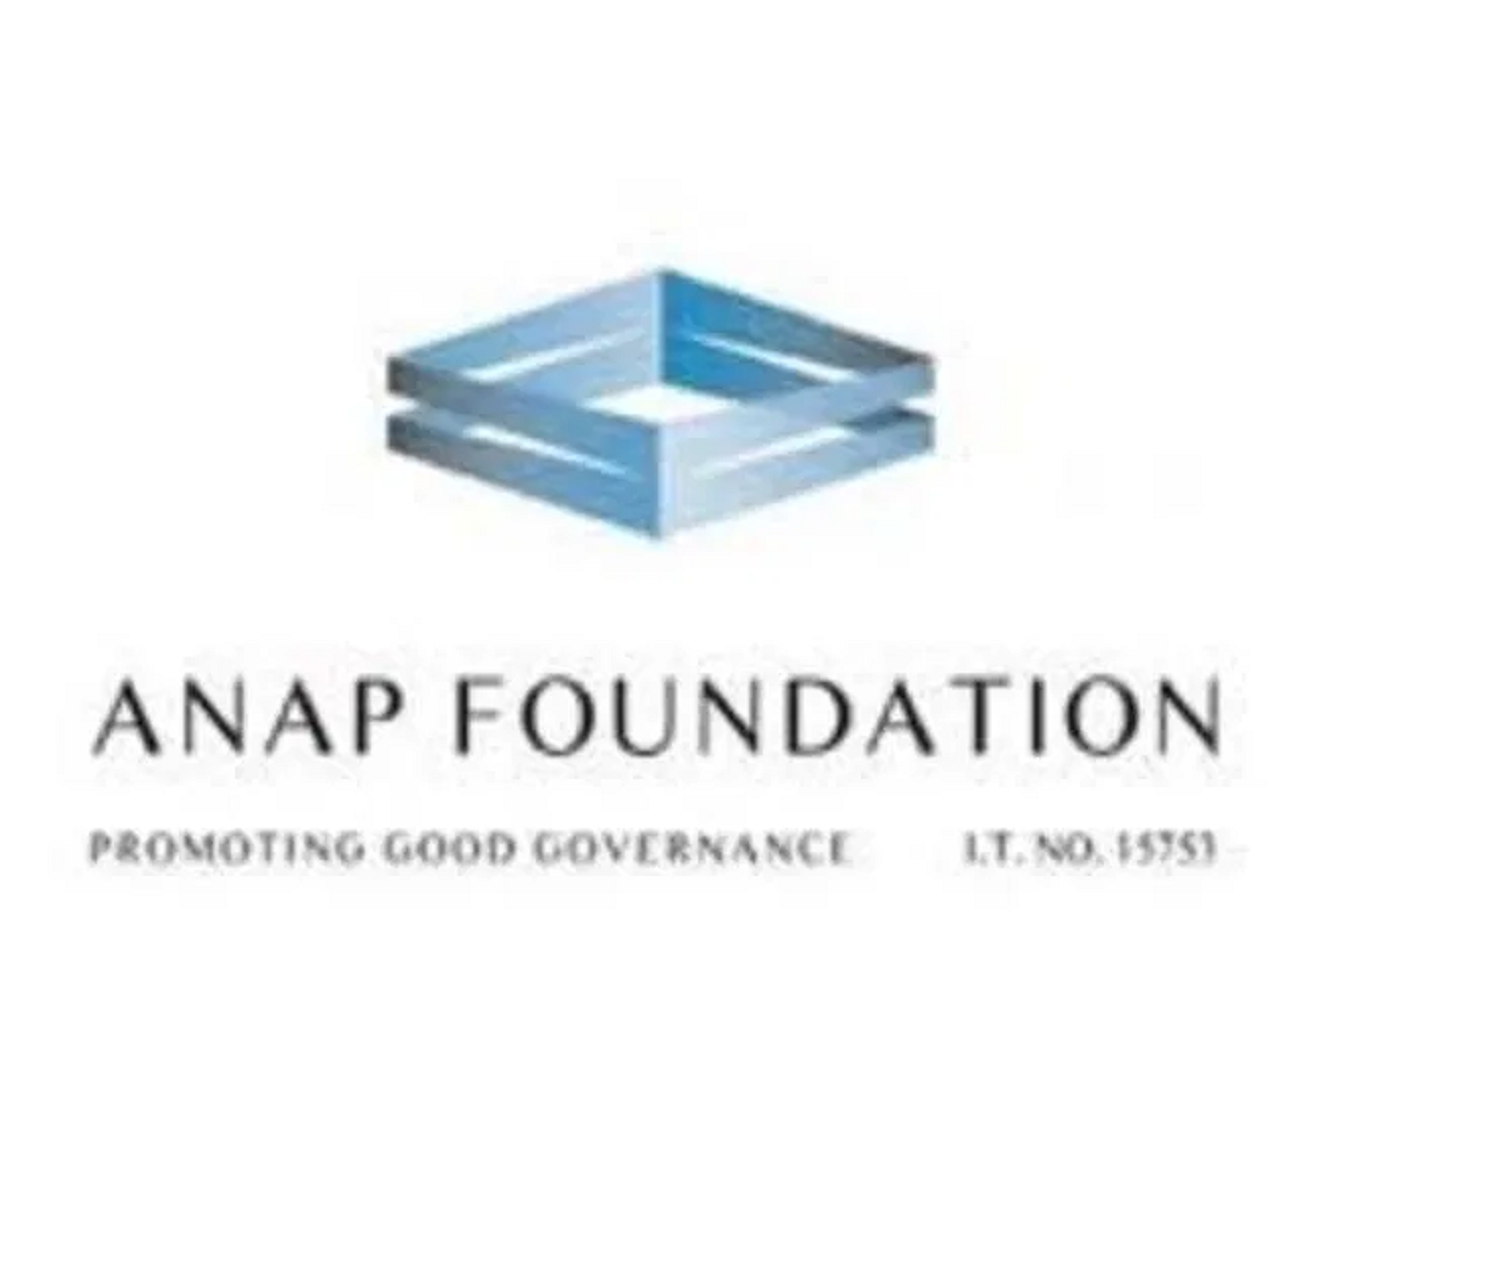 Anap Foundation partners media houses on 'COVID-19 Hall of Shame Initiative'